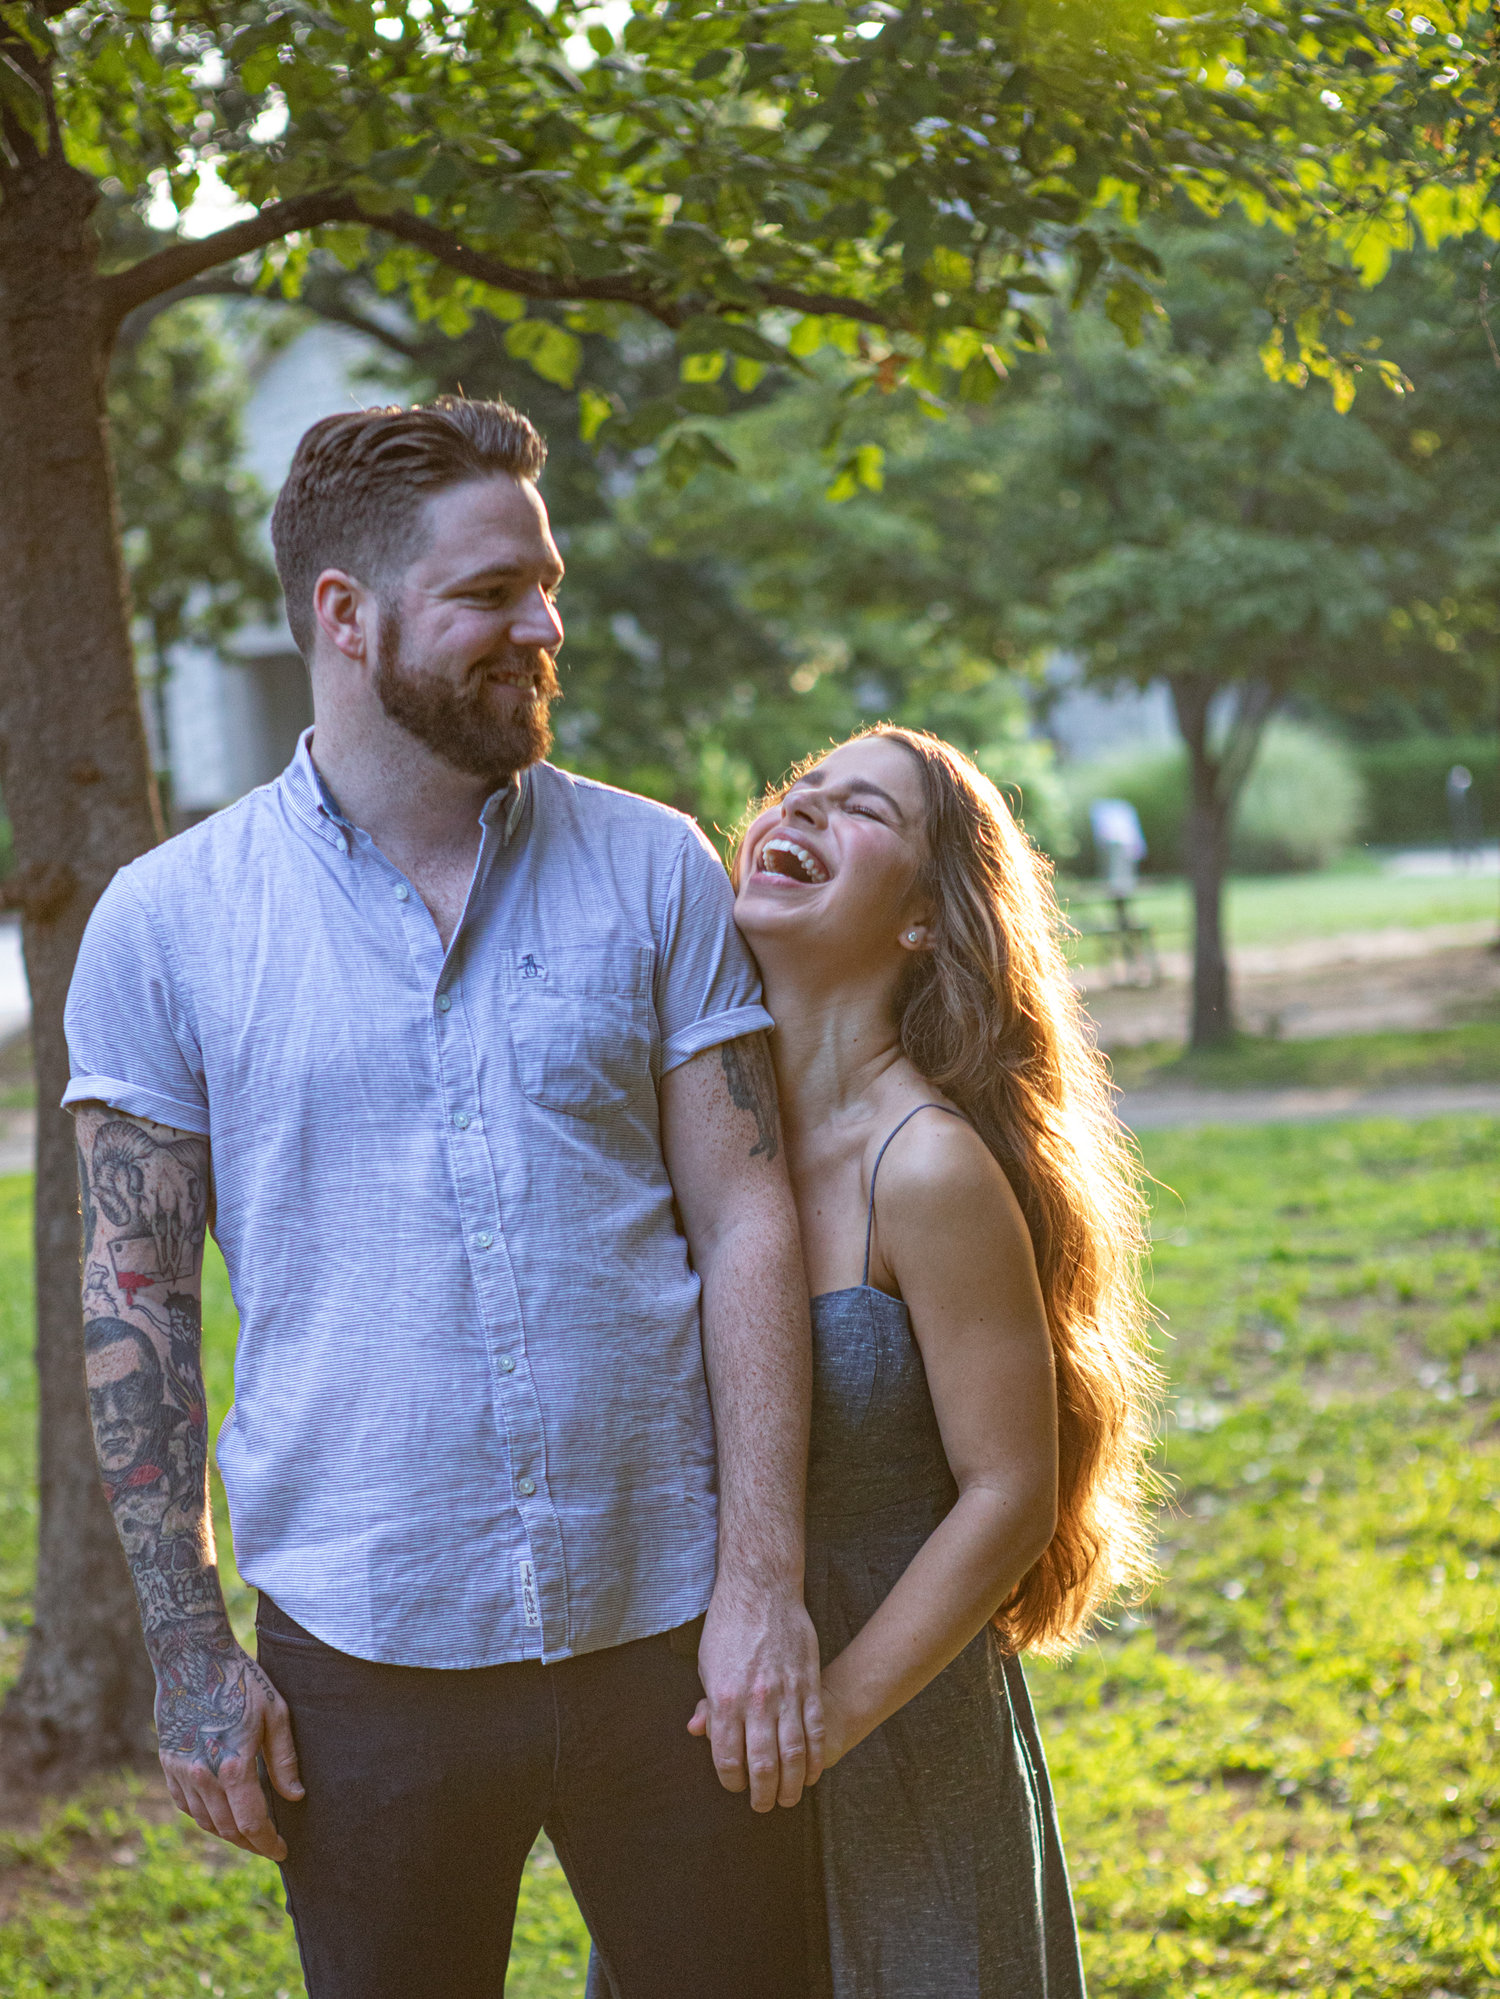 Engagement photography by the Atlanta wedding photographers at AtlatnaArtisticWeddings